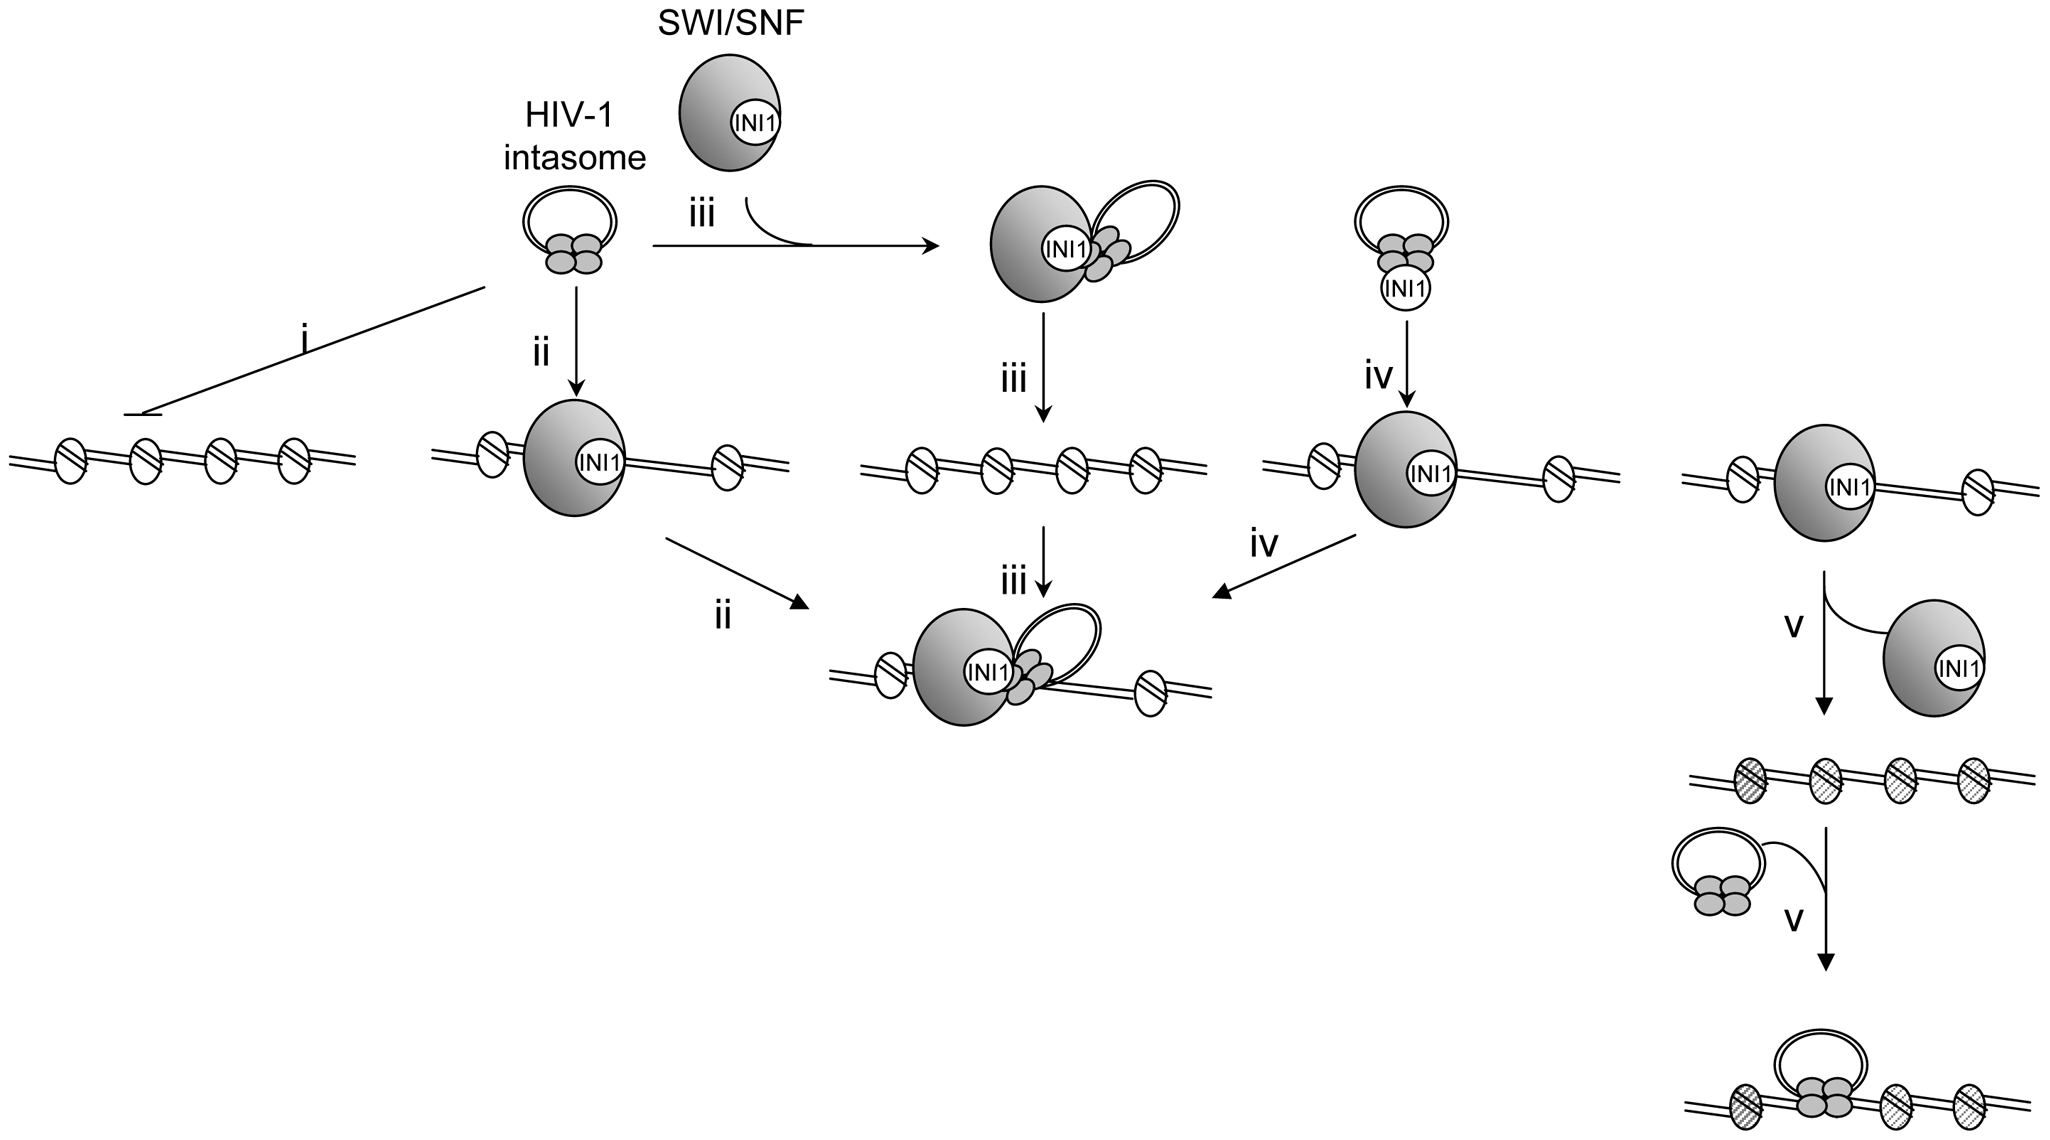 Model for HIV-1 integration into stable chromatin regions.